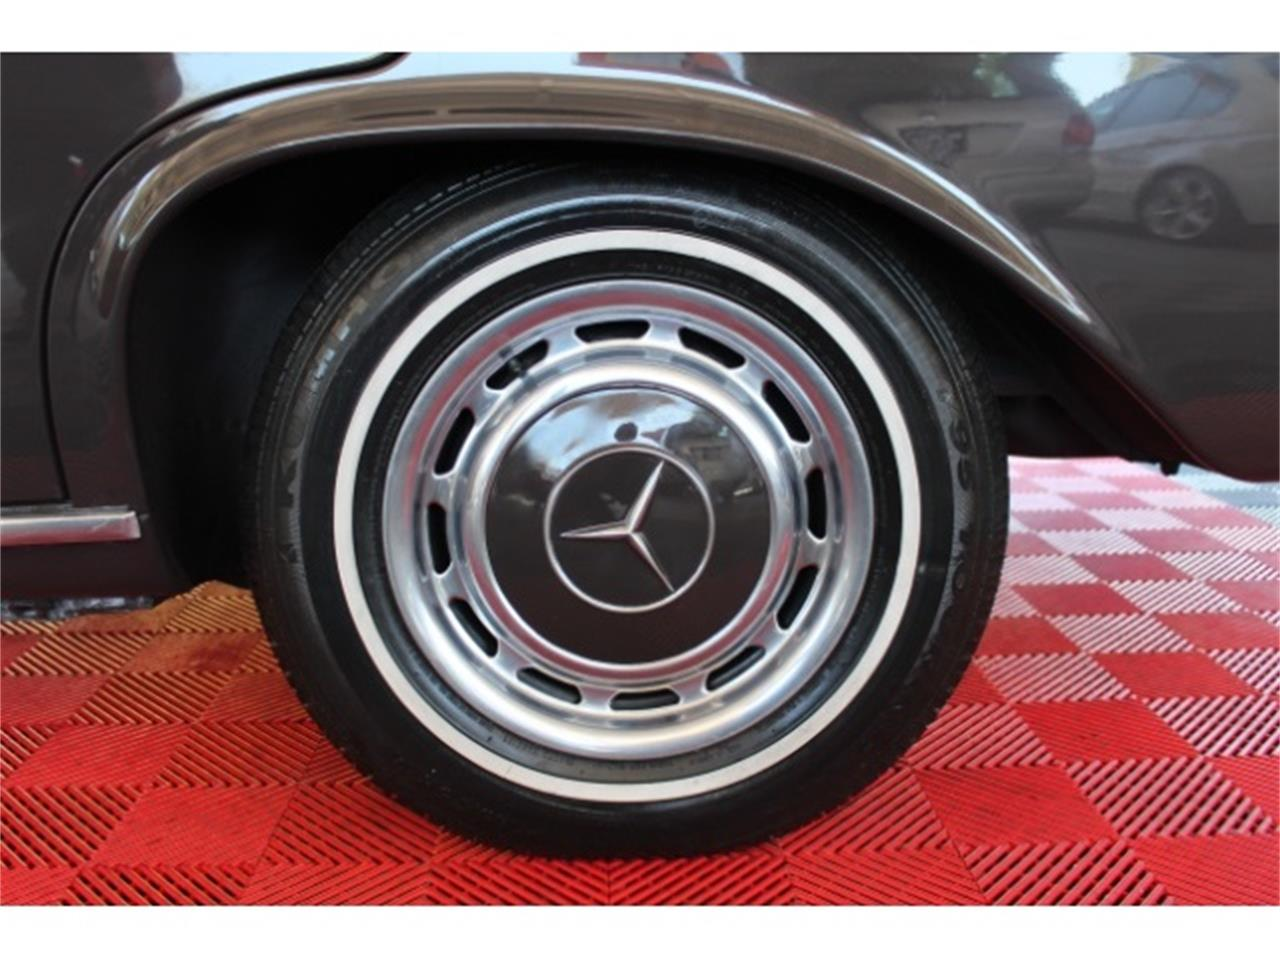 1972 Mercedes-Benz 300SEL for sale in Sherman Oaks, CA – photo 24